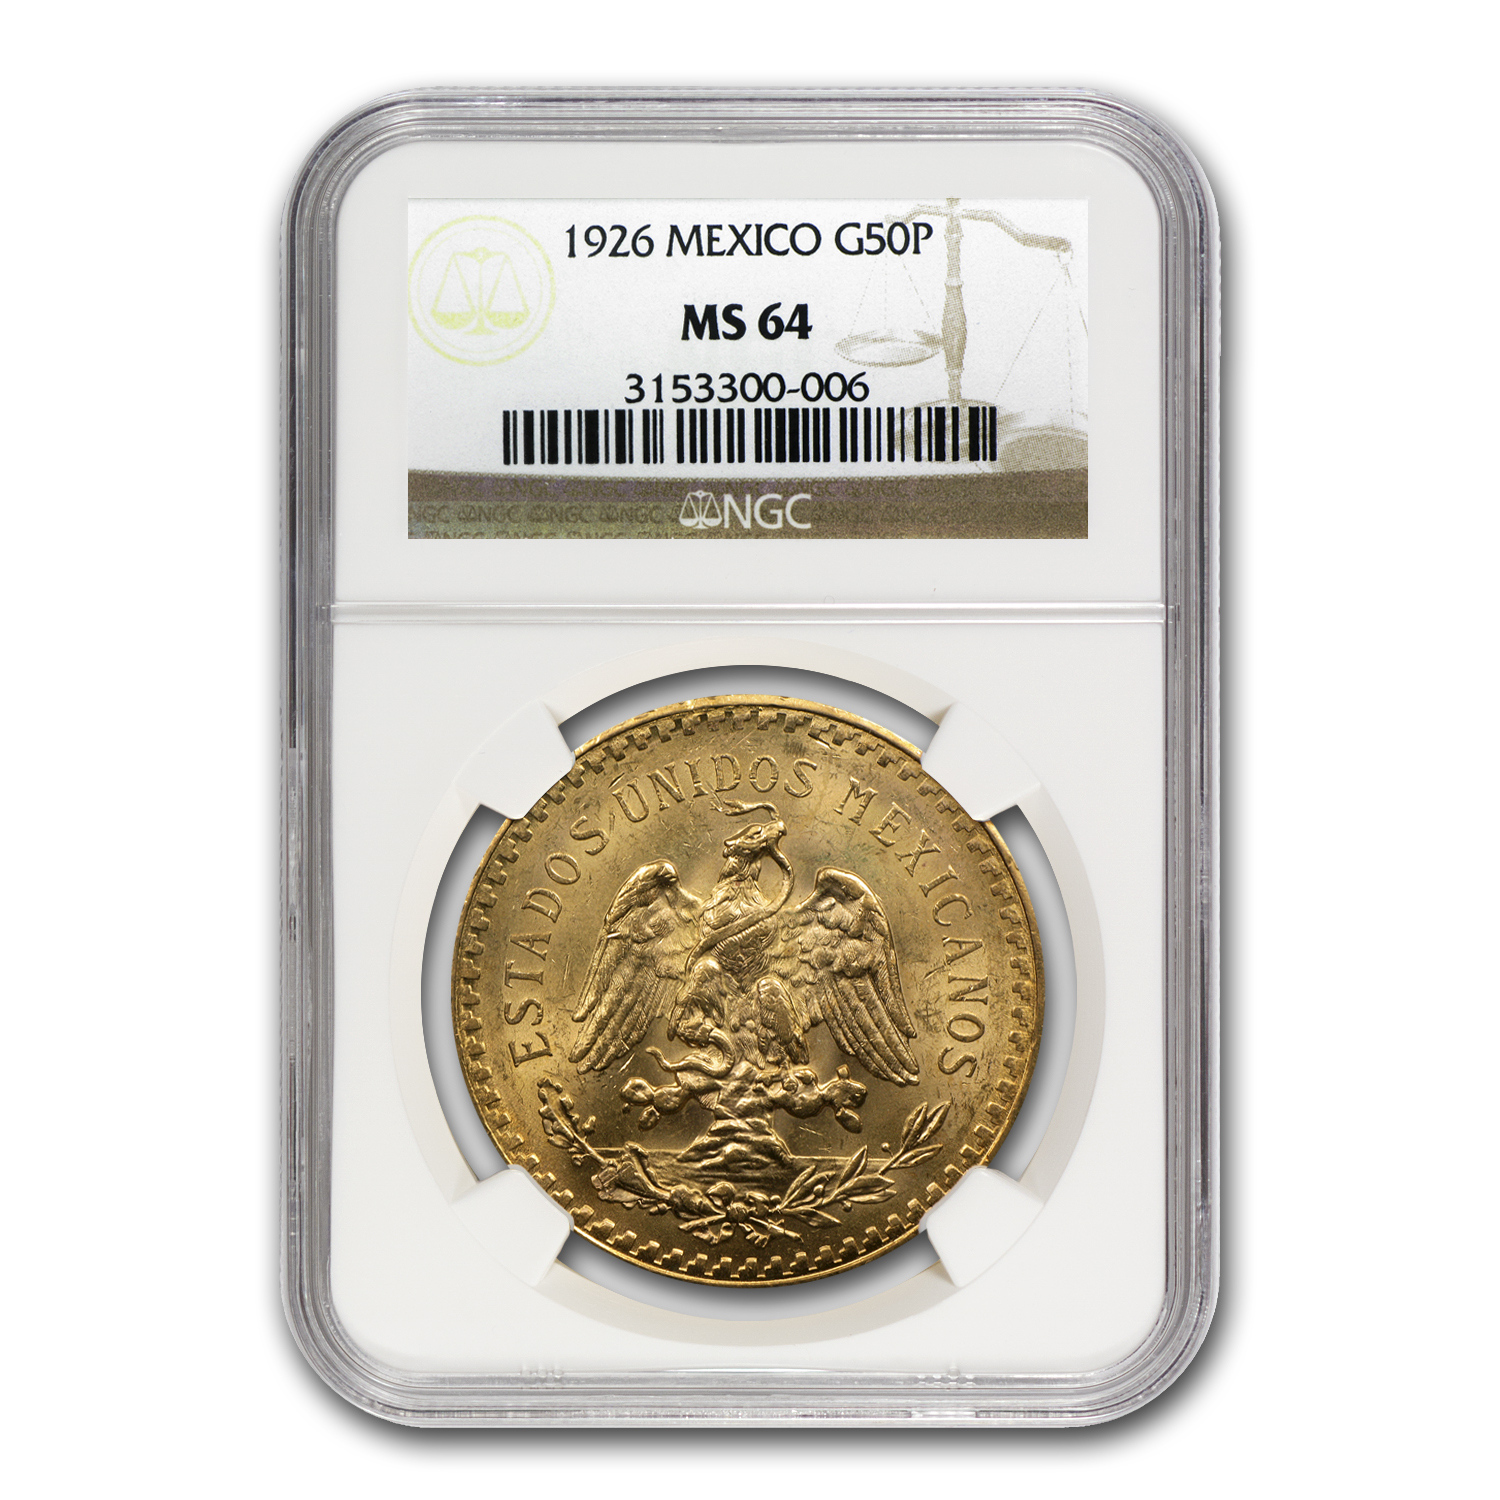 Mexico 1926 50 Pesos Gold Coin - MS-64 NGC